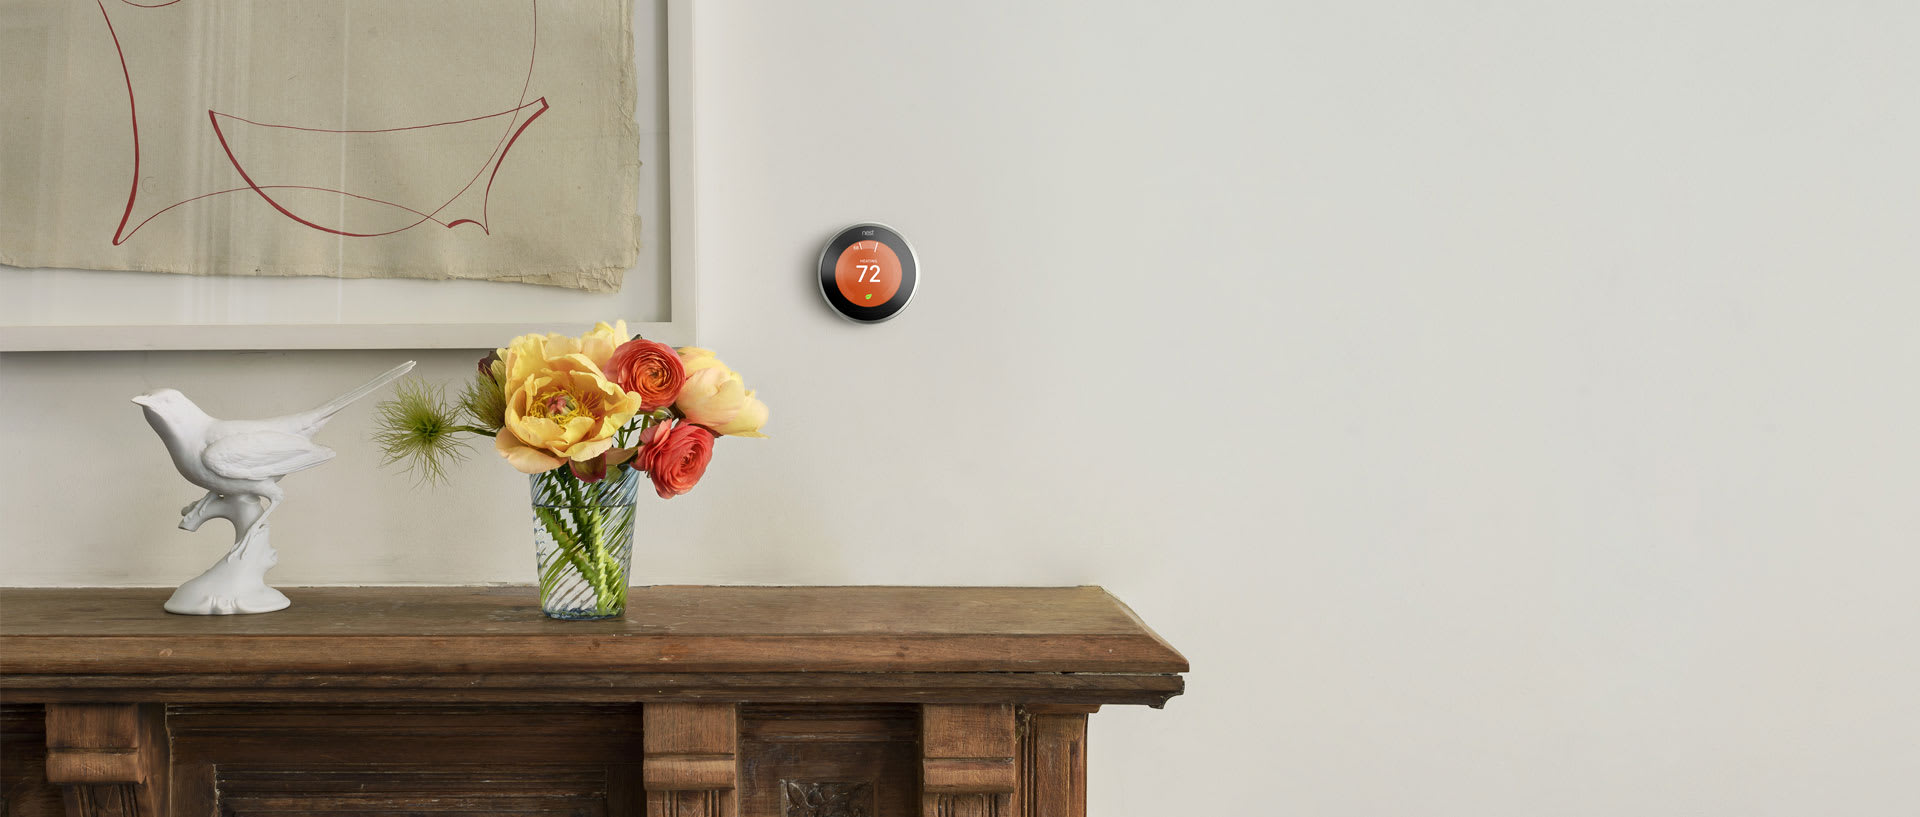 New Nest Thermostat is Slim and Bright